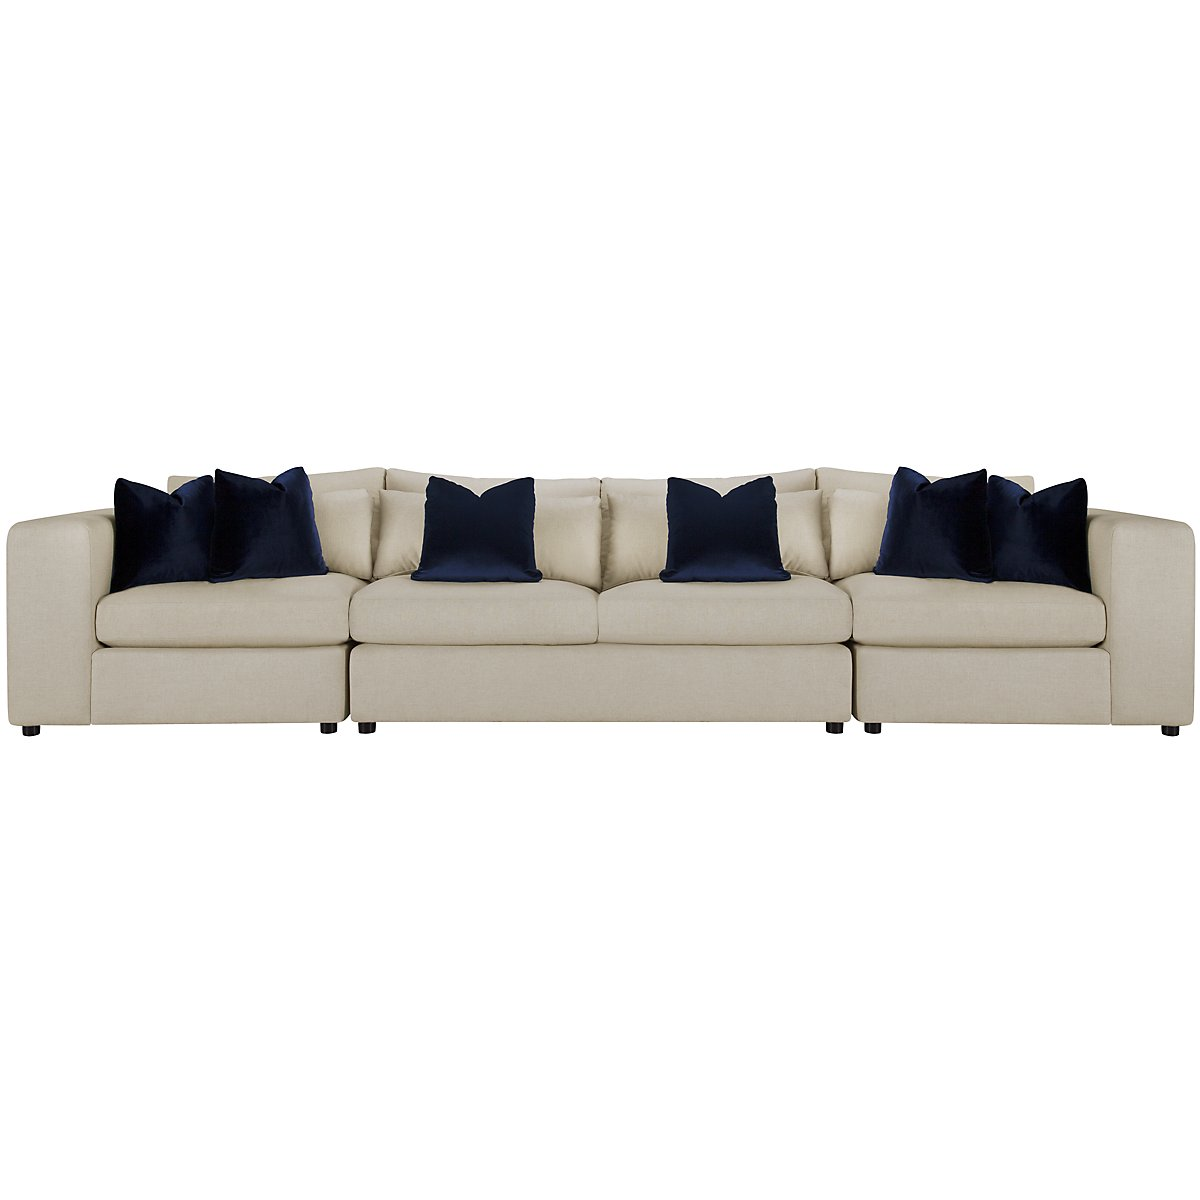 city furniture como lt beige fabric large sofa. Black Bedroom Furniture Sets. Home Design Ideas